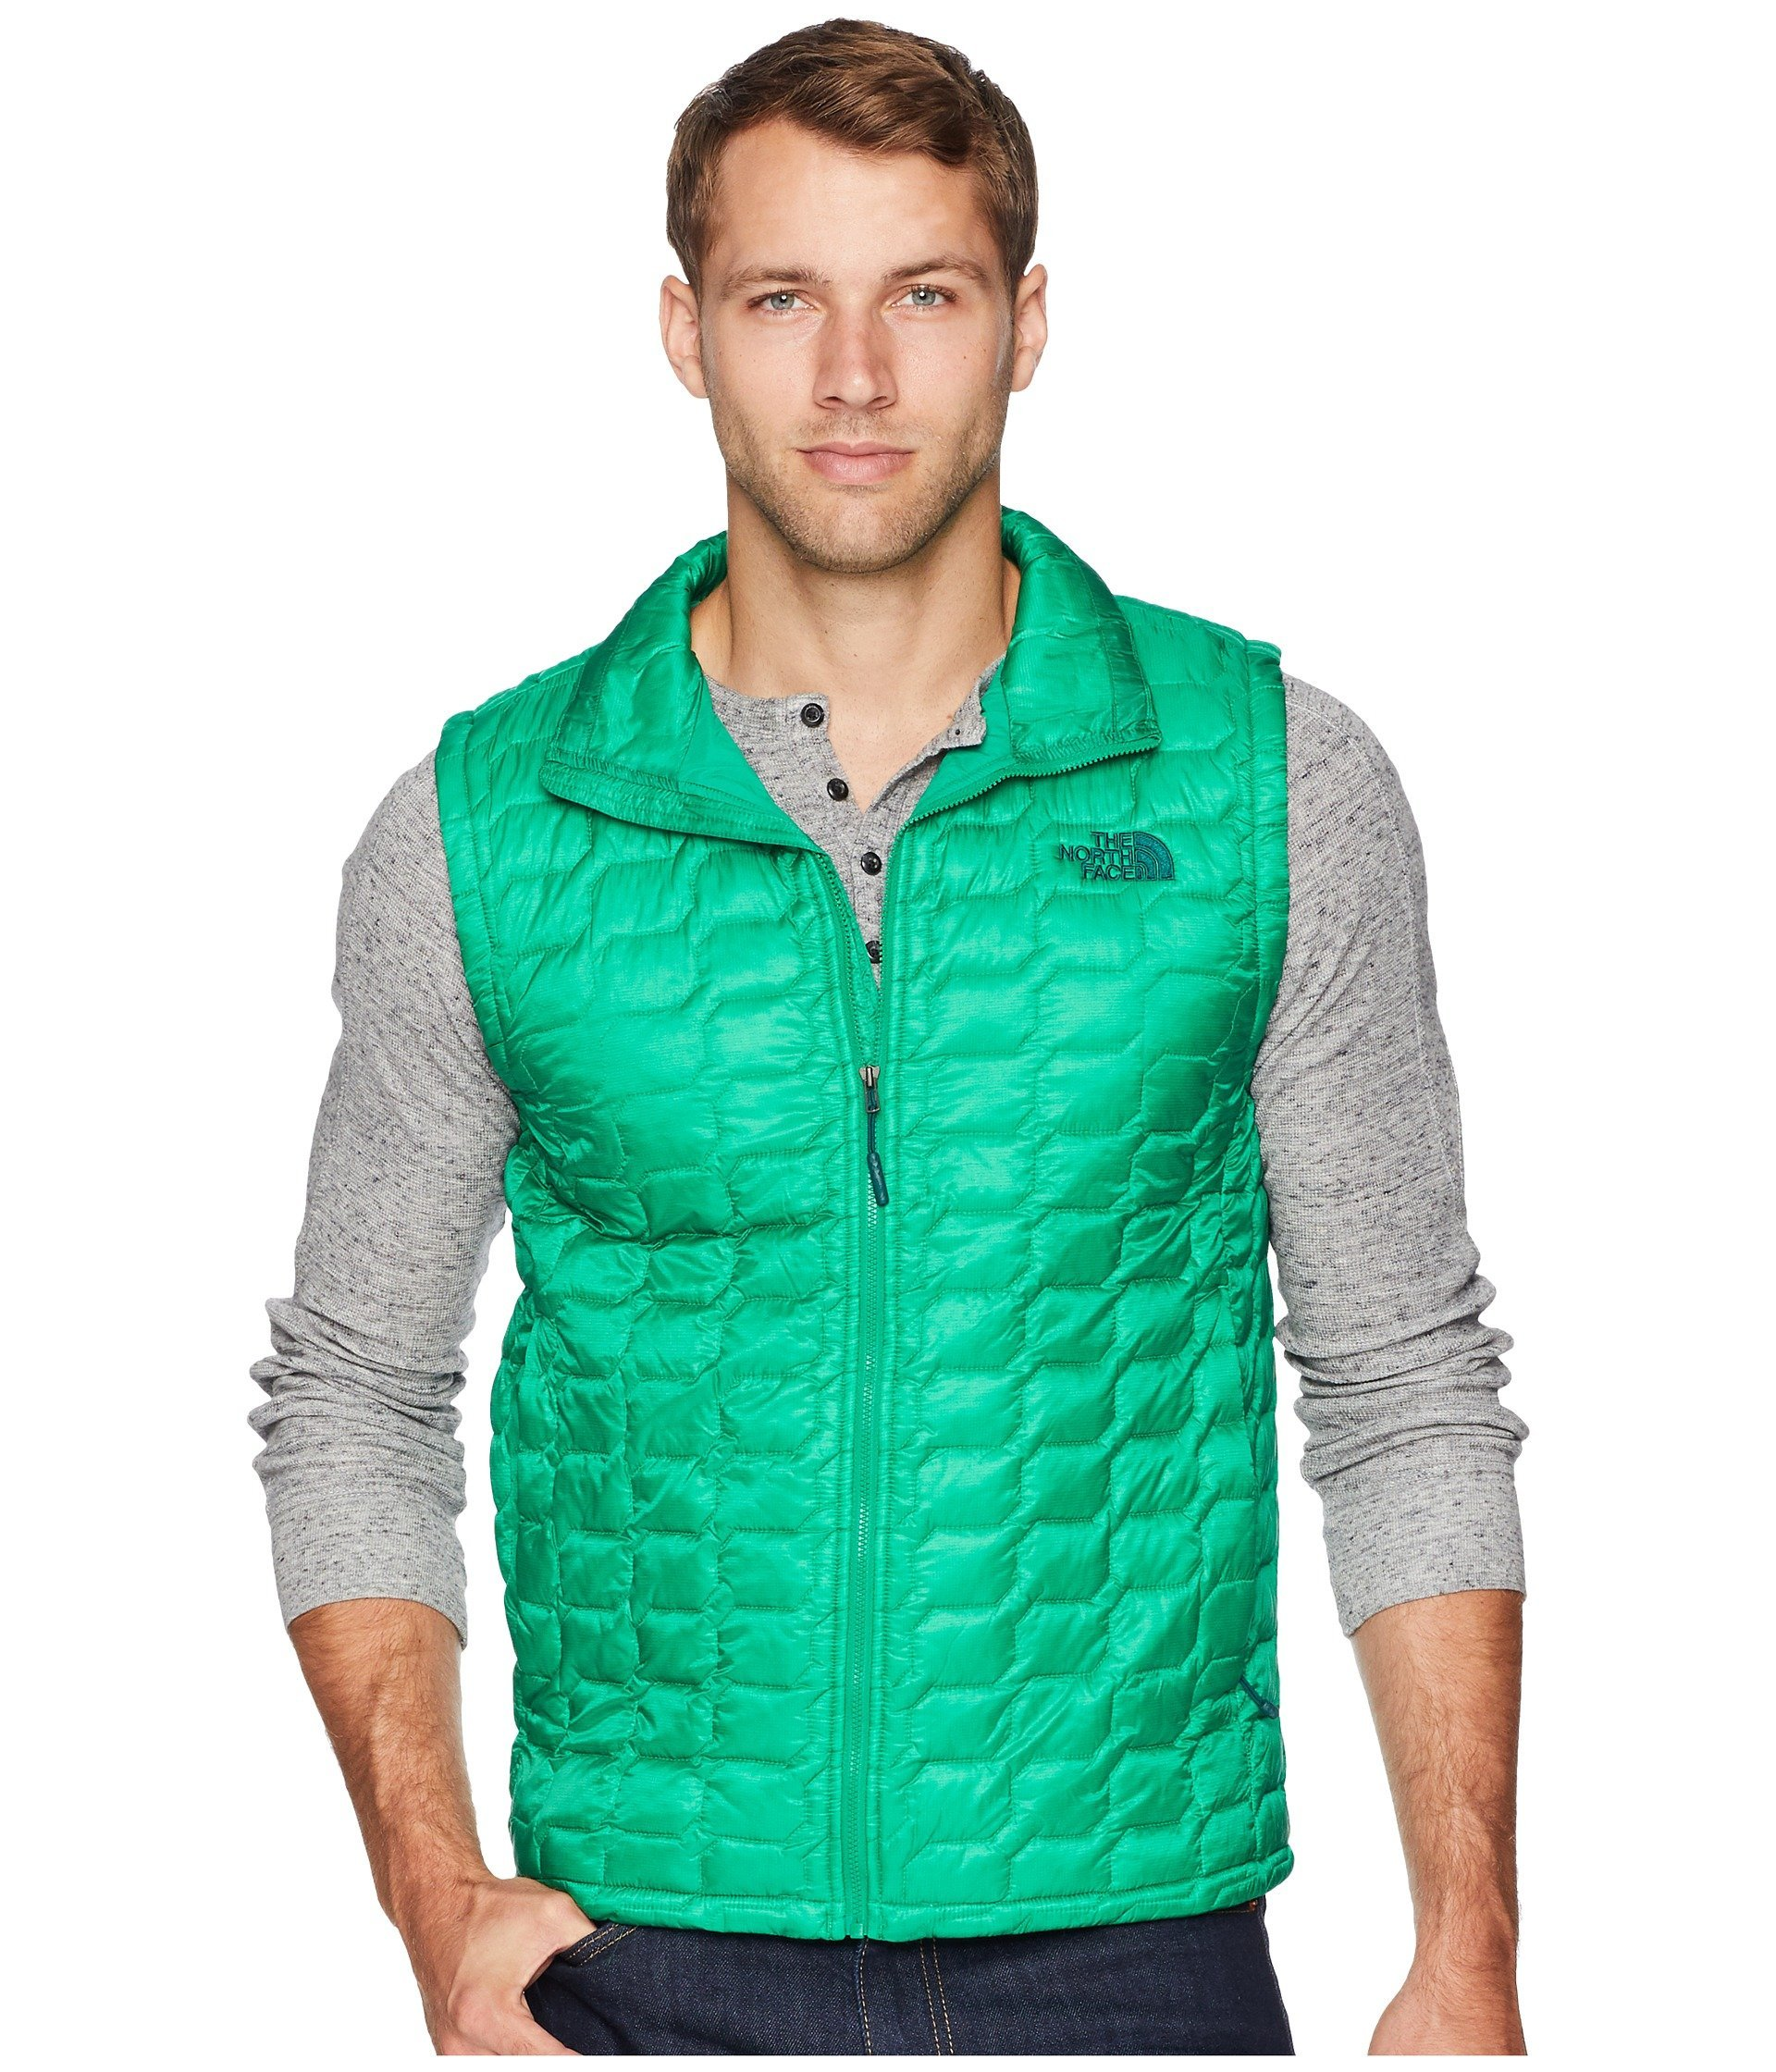 The North Face Men's Thermoball Vest - Primary Green - L by The North Face